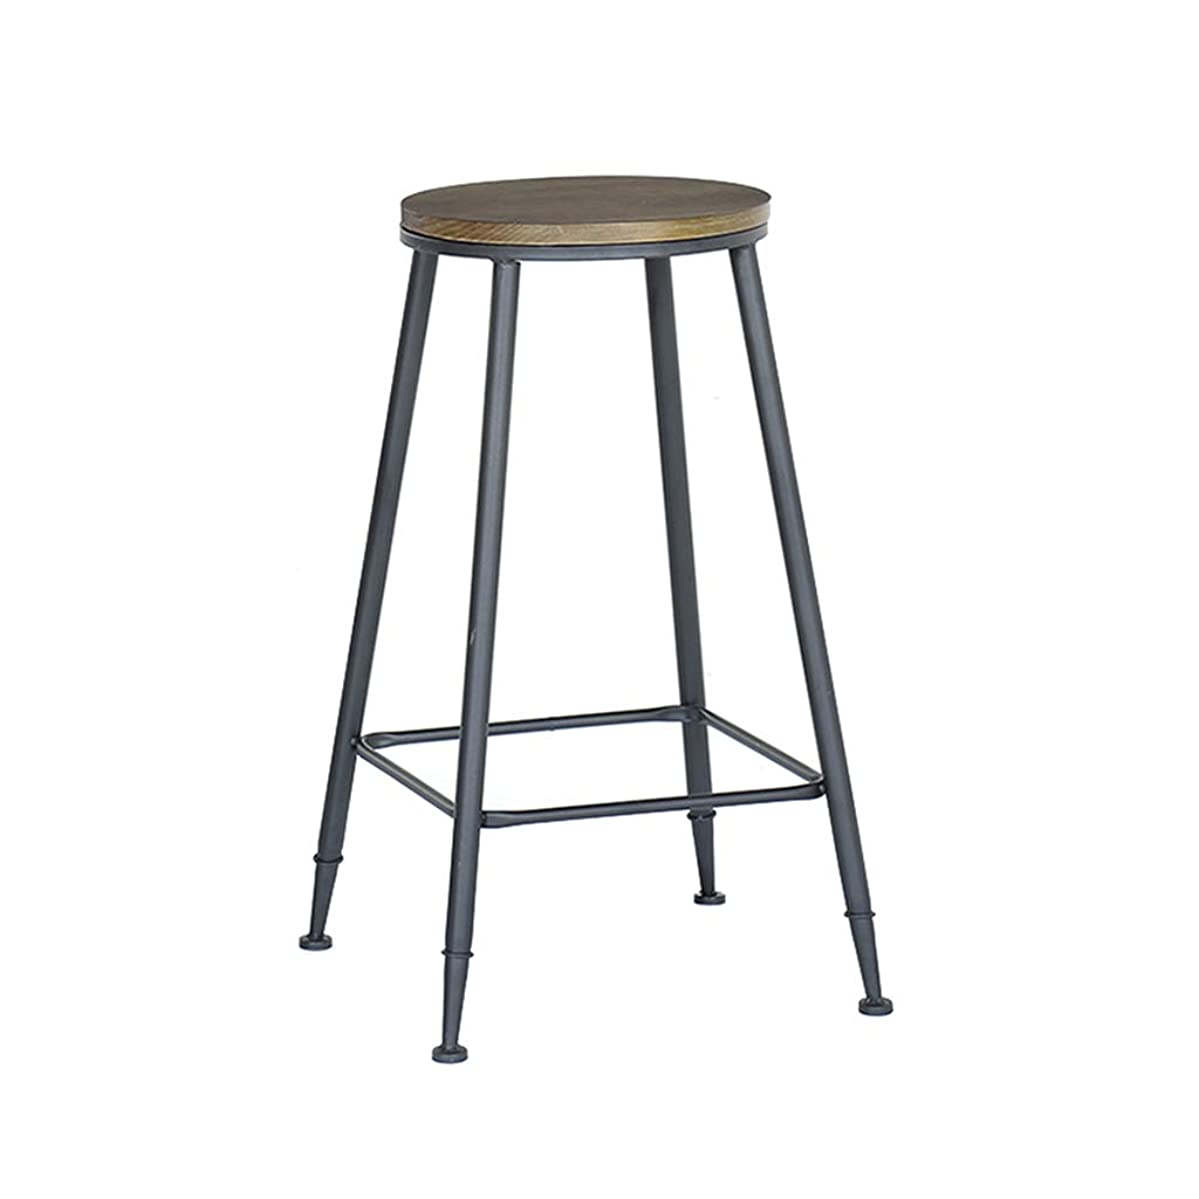 LWG – Barstools Bar Stool Wooden Leisure Bar Chair Iron Art High Stool Nordic Dining Chair with Footrest Round/Square Rustic Industrial Style Simple for Restaurant High 75cm